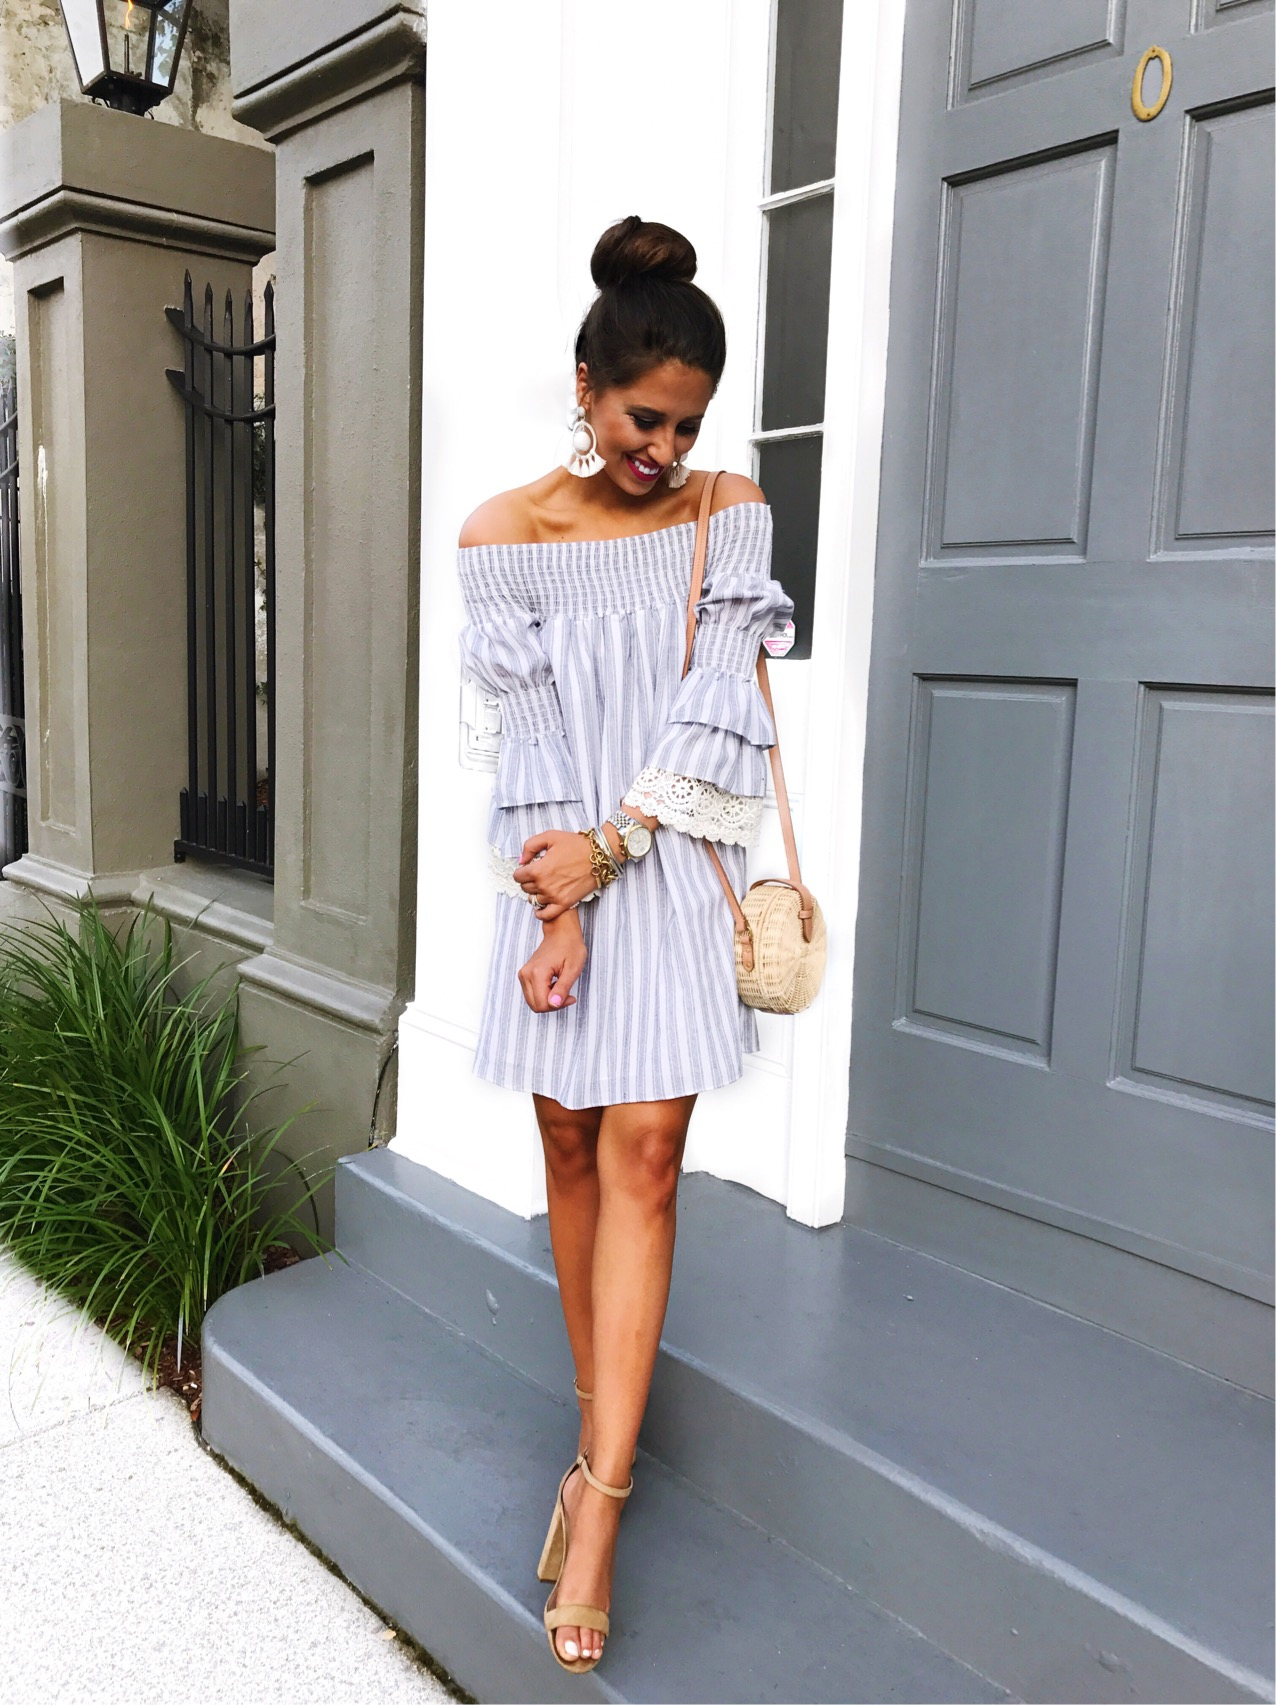 Dress Up Buttercup, Dede Raad, Houston blogger, fashion blogger, Charleston Travel Guide